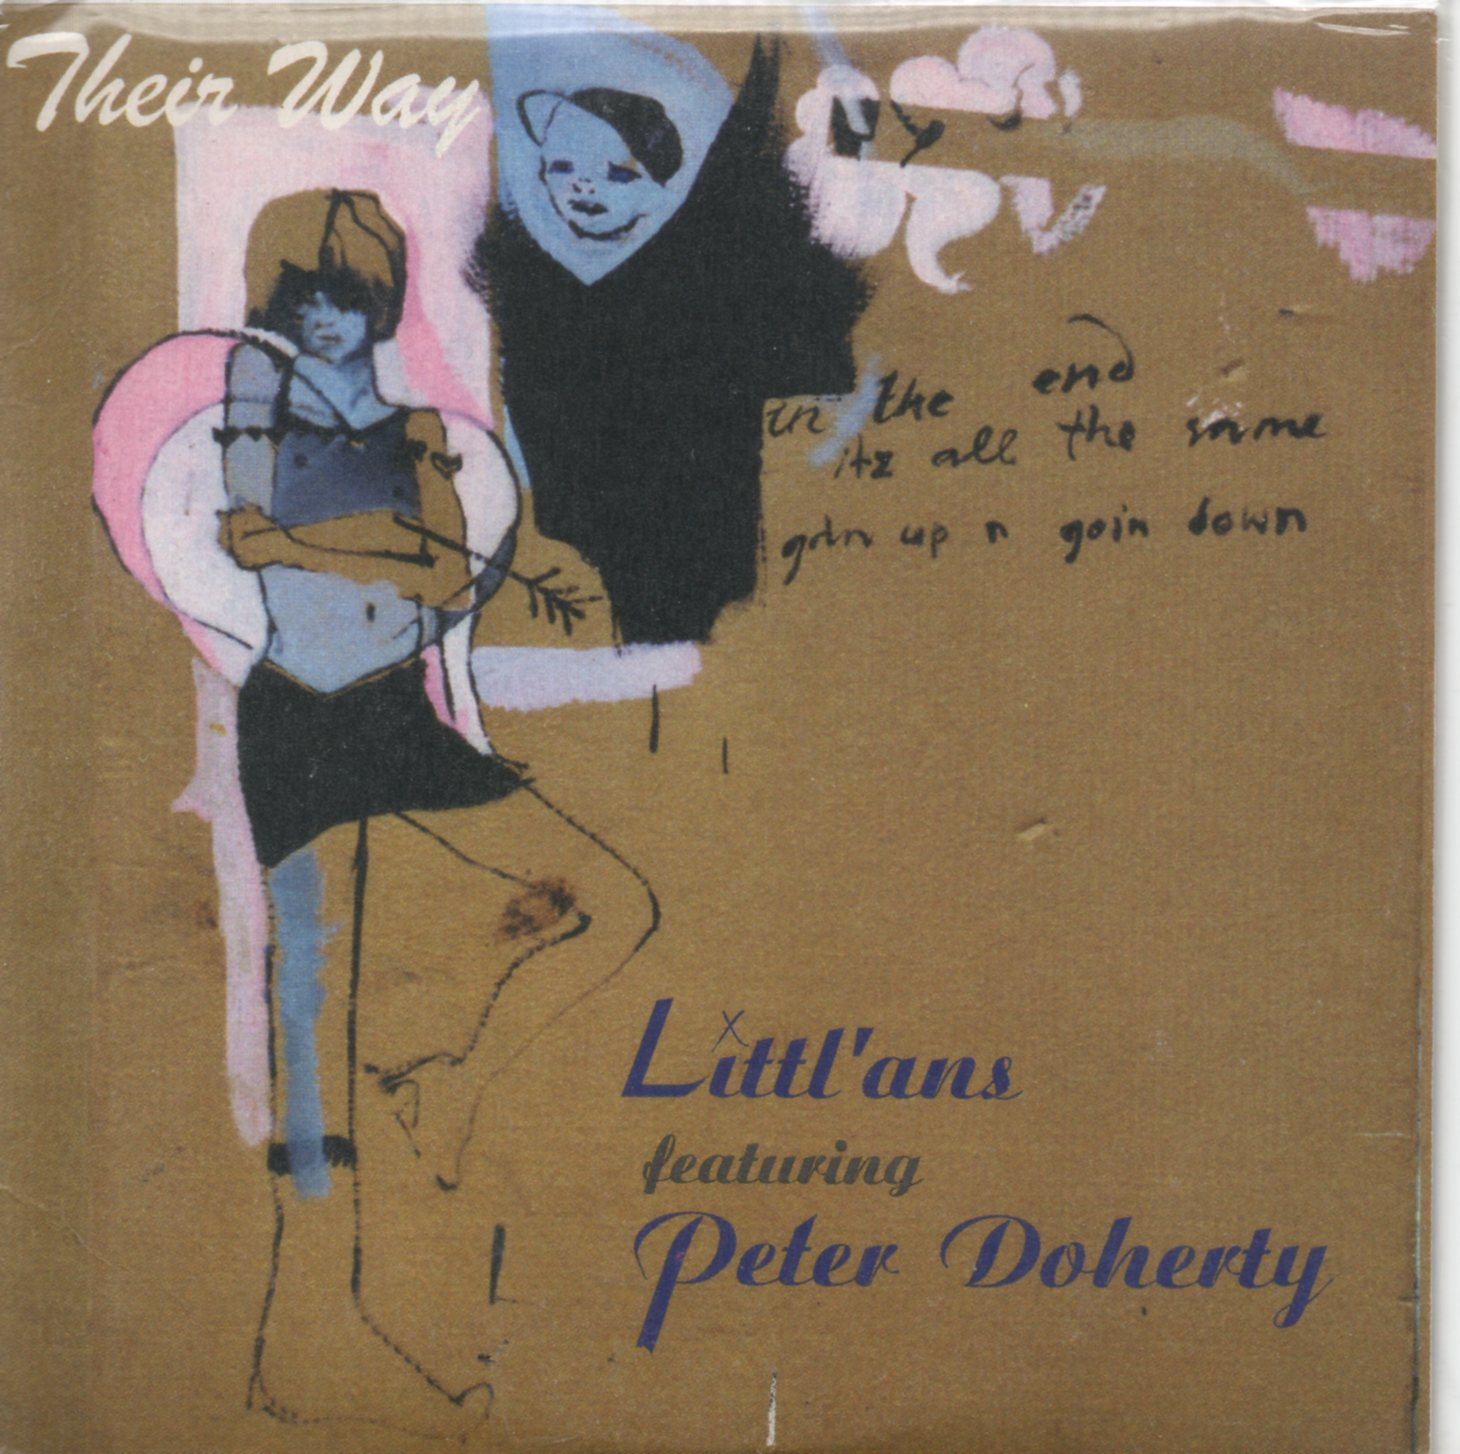 LITTL'ANS FEAT. PETER DOHERTY - Their way 4-track CARD SLEEVE - CD single